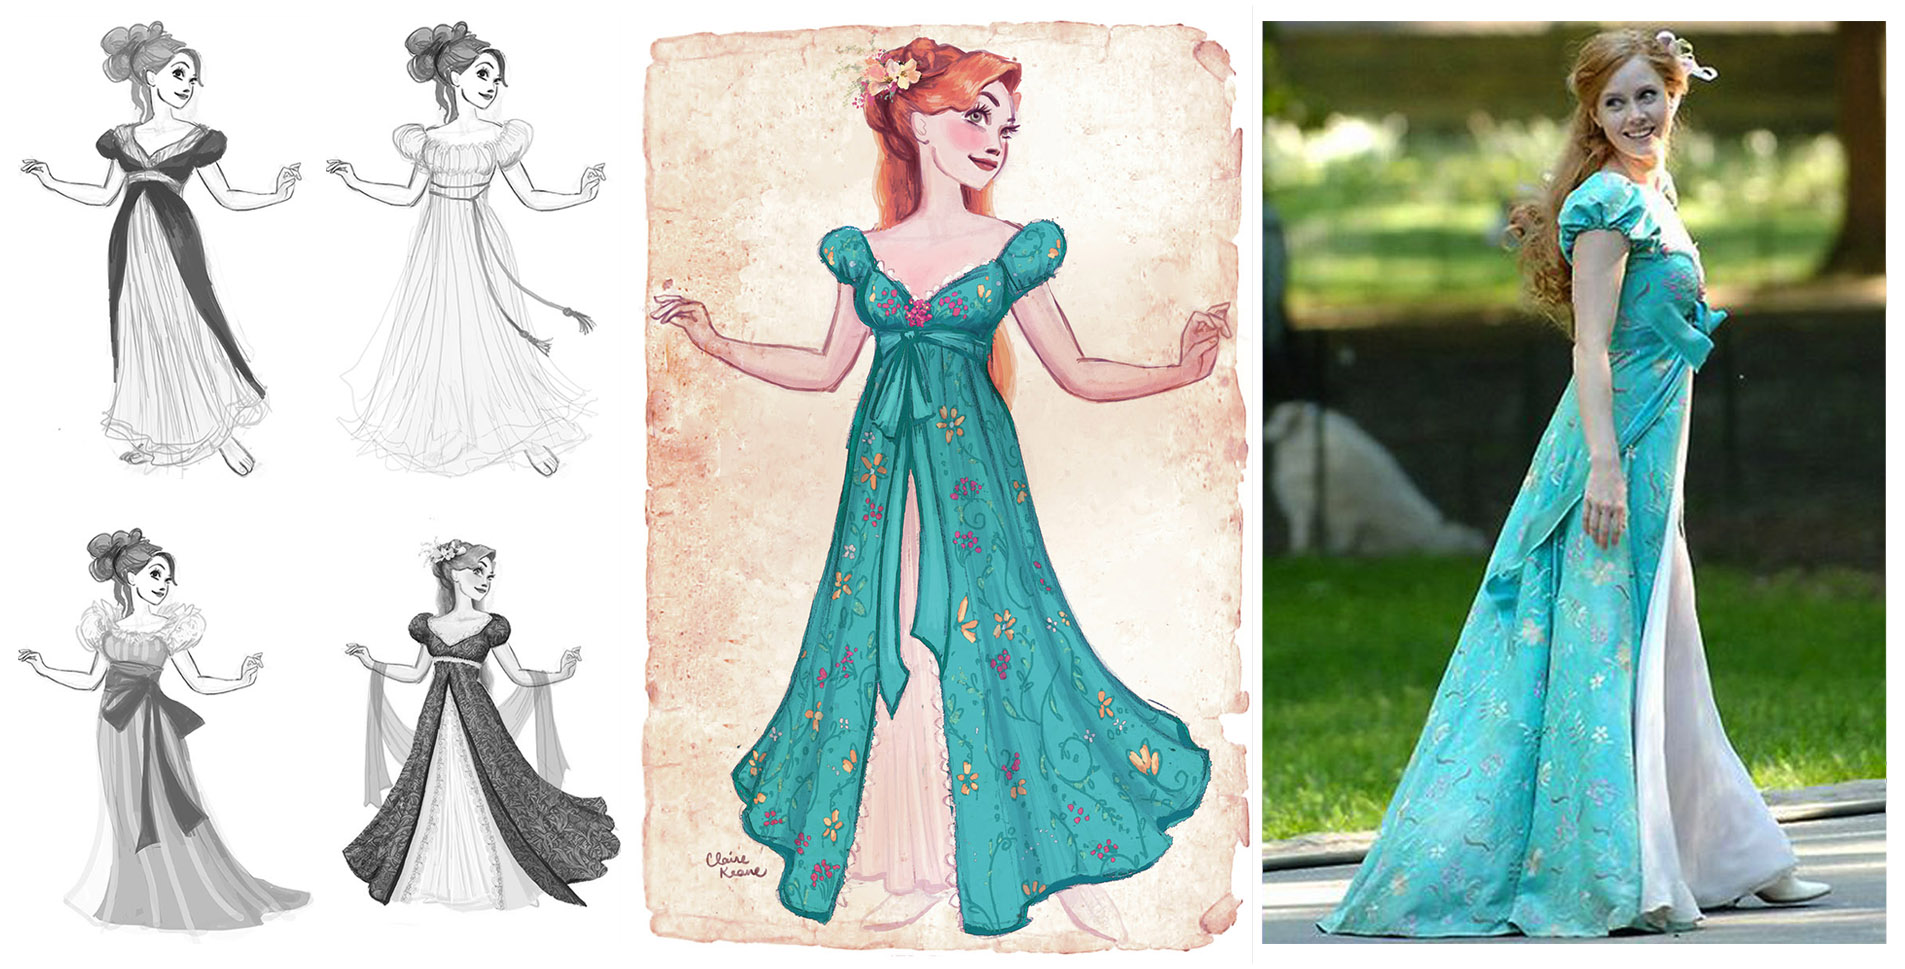 GISELLE COSTUME DESIGN / AMY ADAMS // VISUAL DEVELOPMENT FOR ENCHANTED